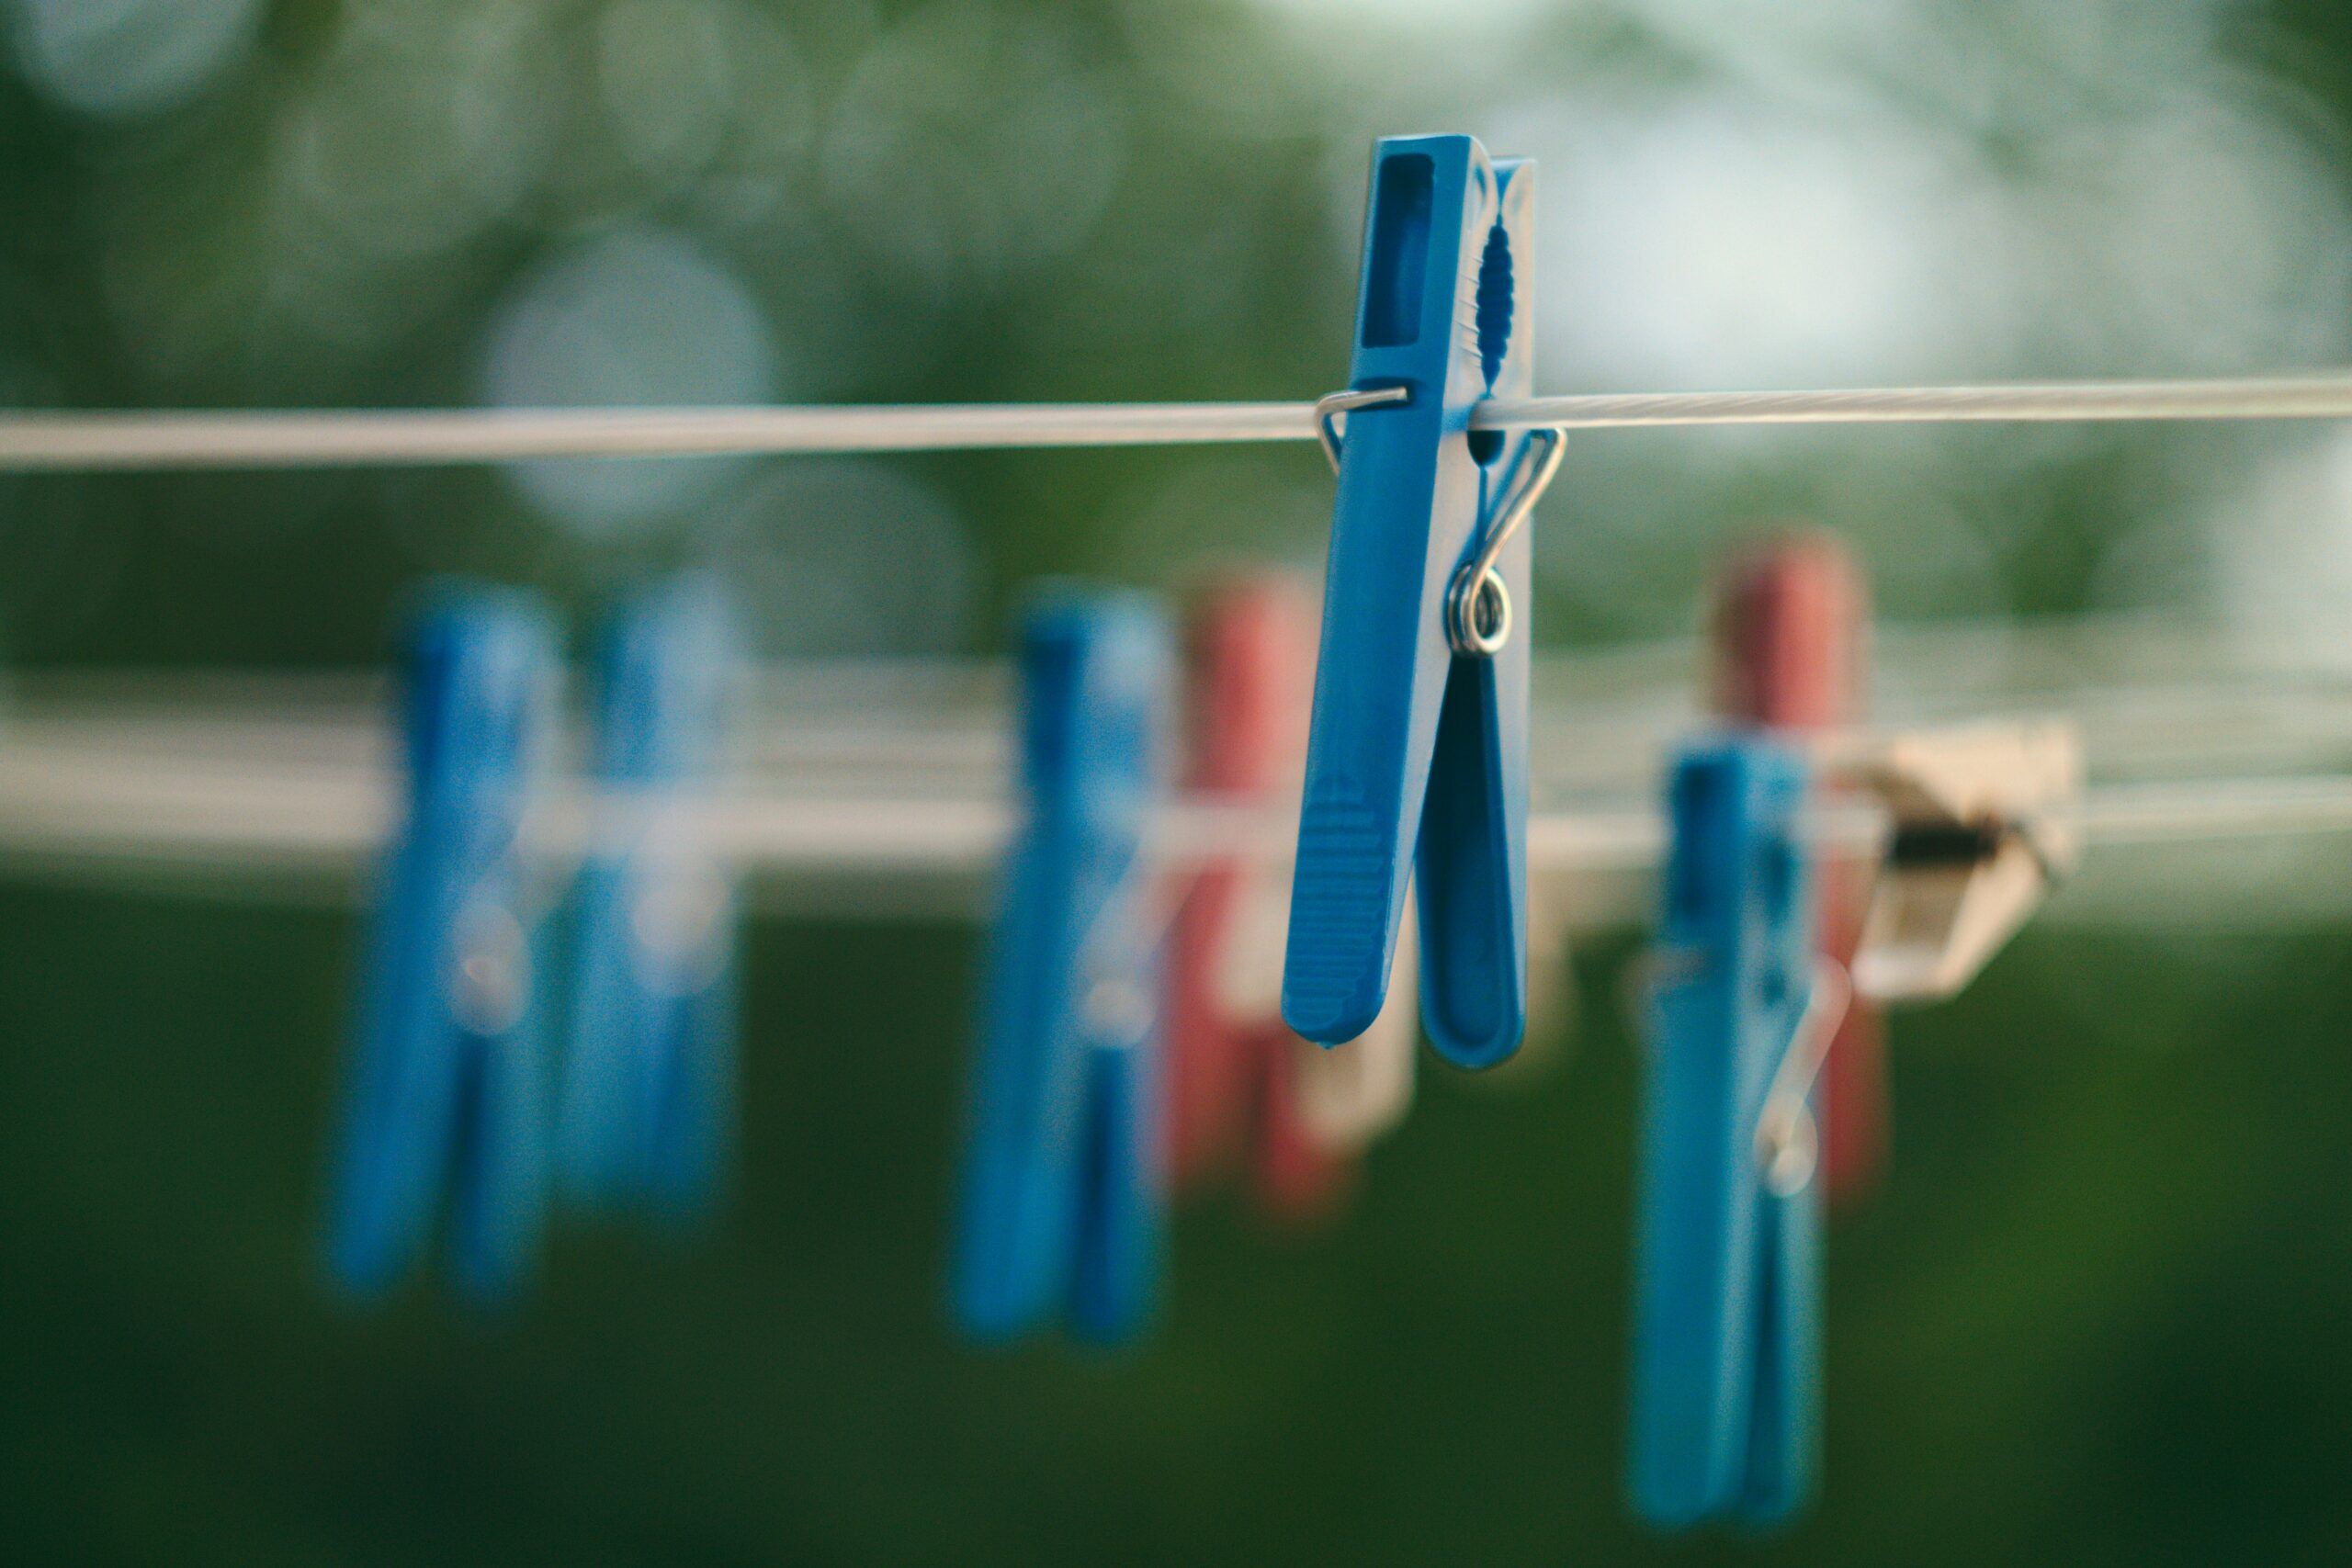 Clothesline with clothes pins